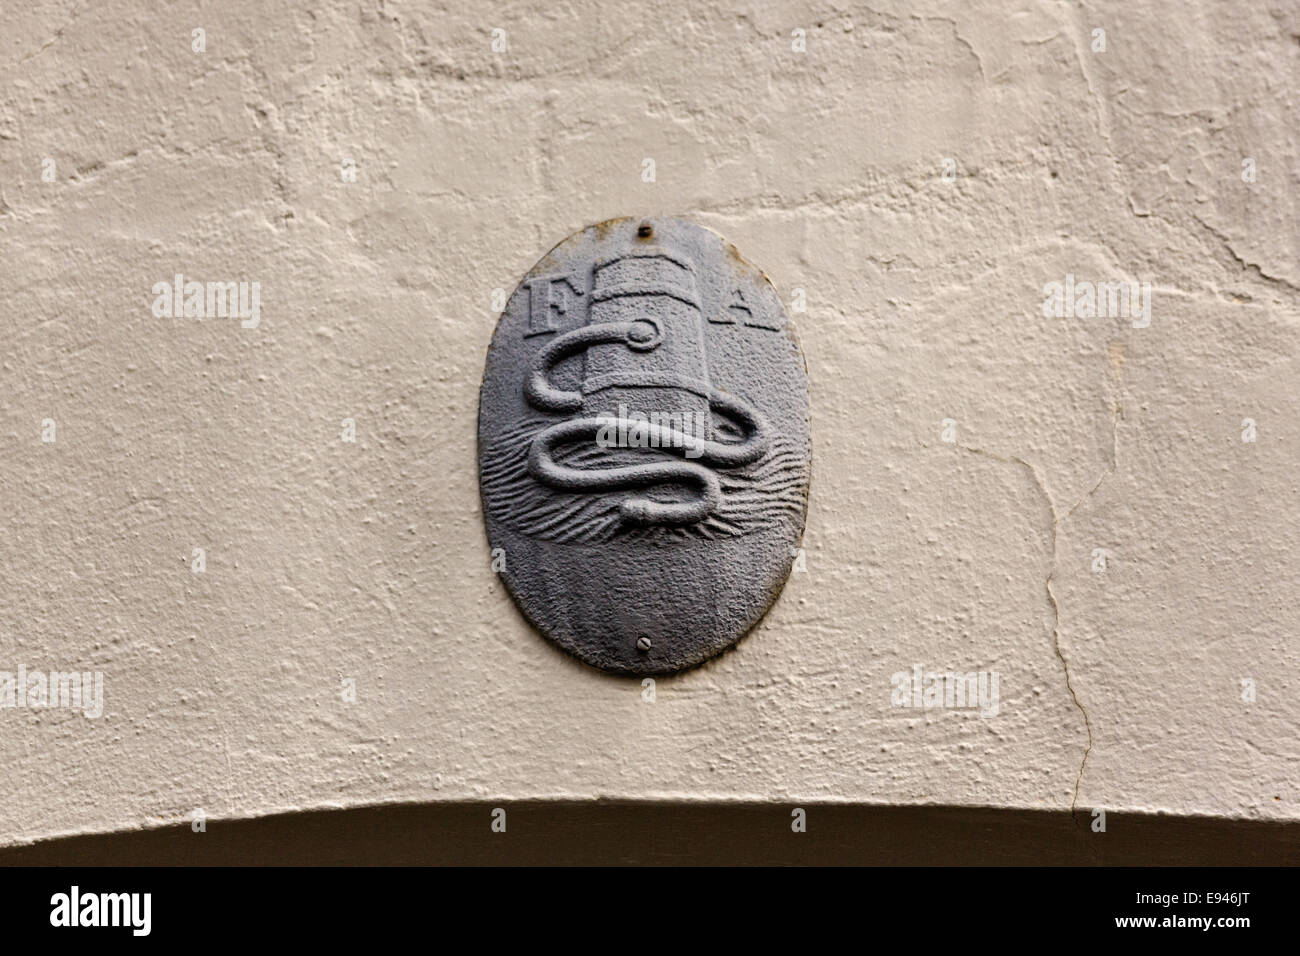 A Fire Insurance mark or plaque on a home in the French Quarter along Queen Street in historic Charleston, SC. Stock Photo